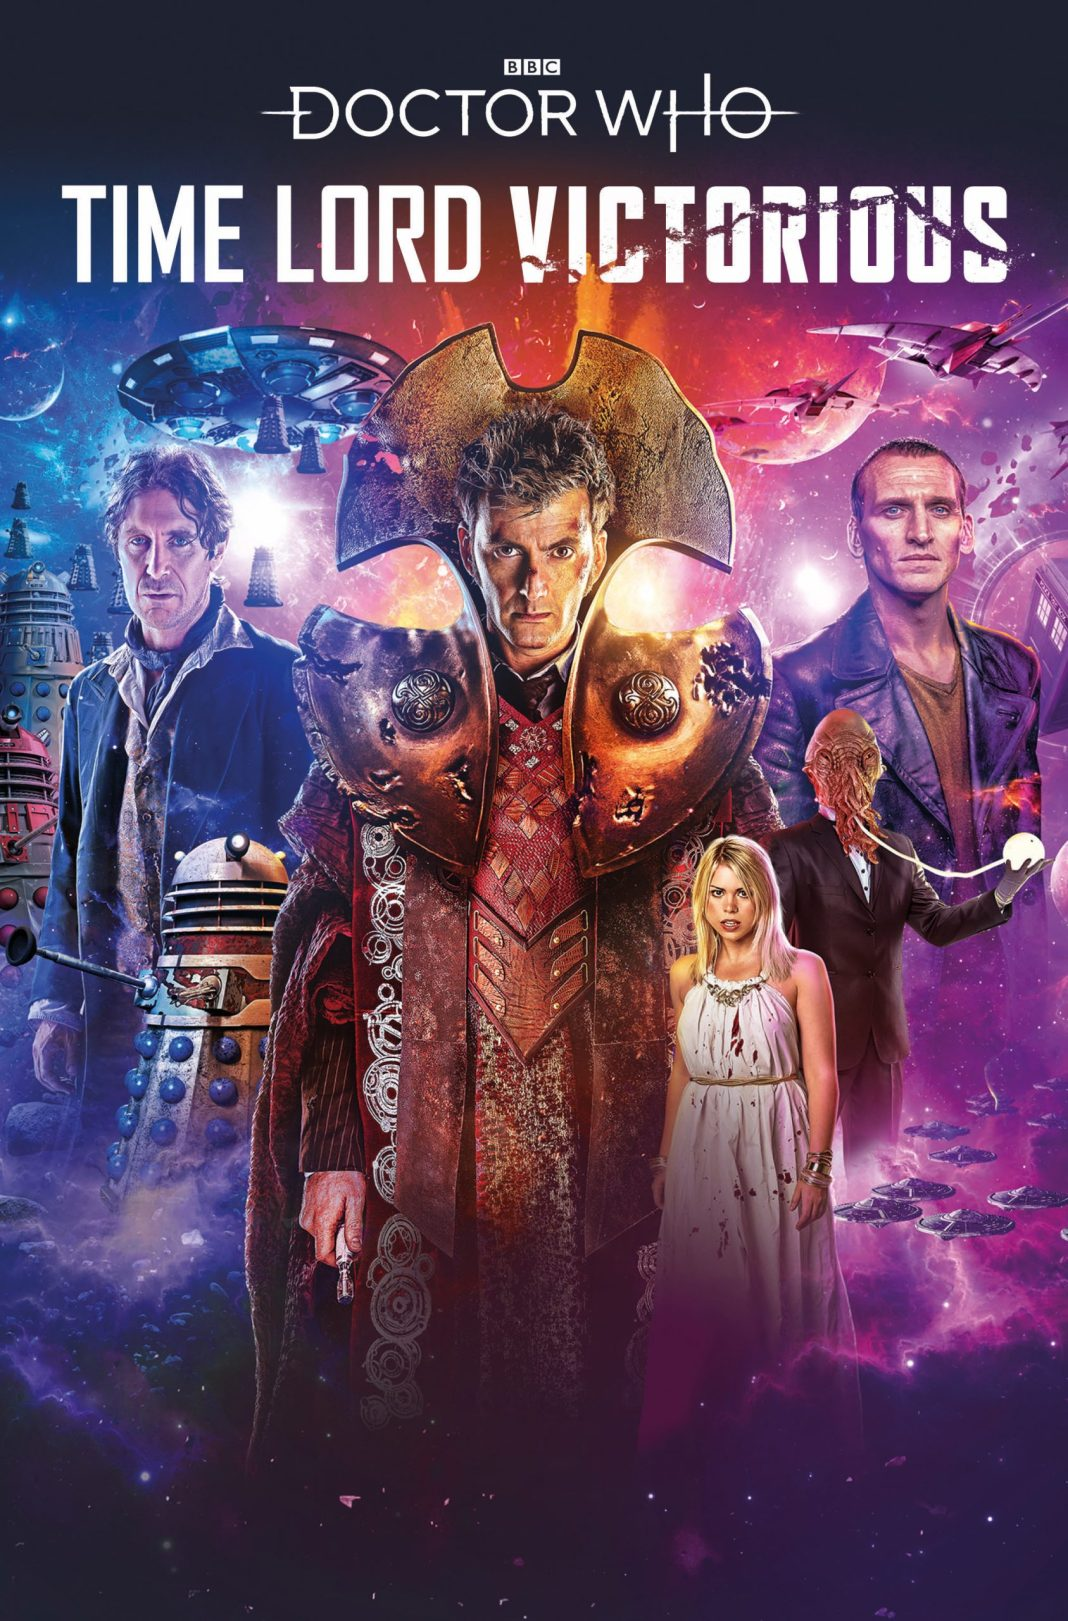 Titan Comics - Doctor Who: Time Lord Victorious #1 - Cover A: Lee Binding